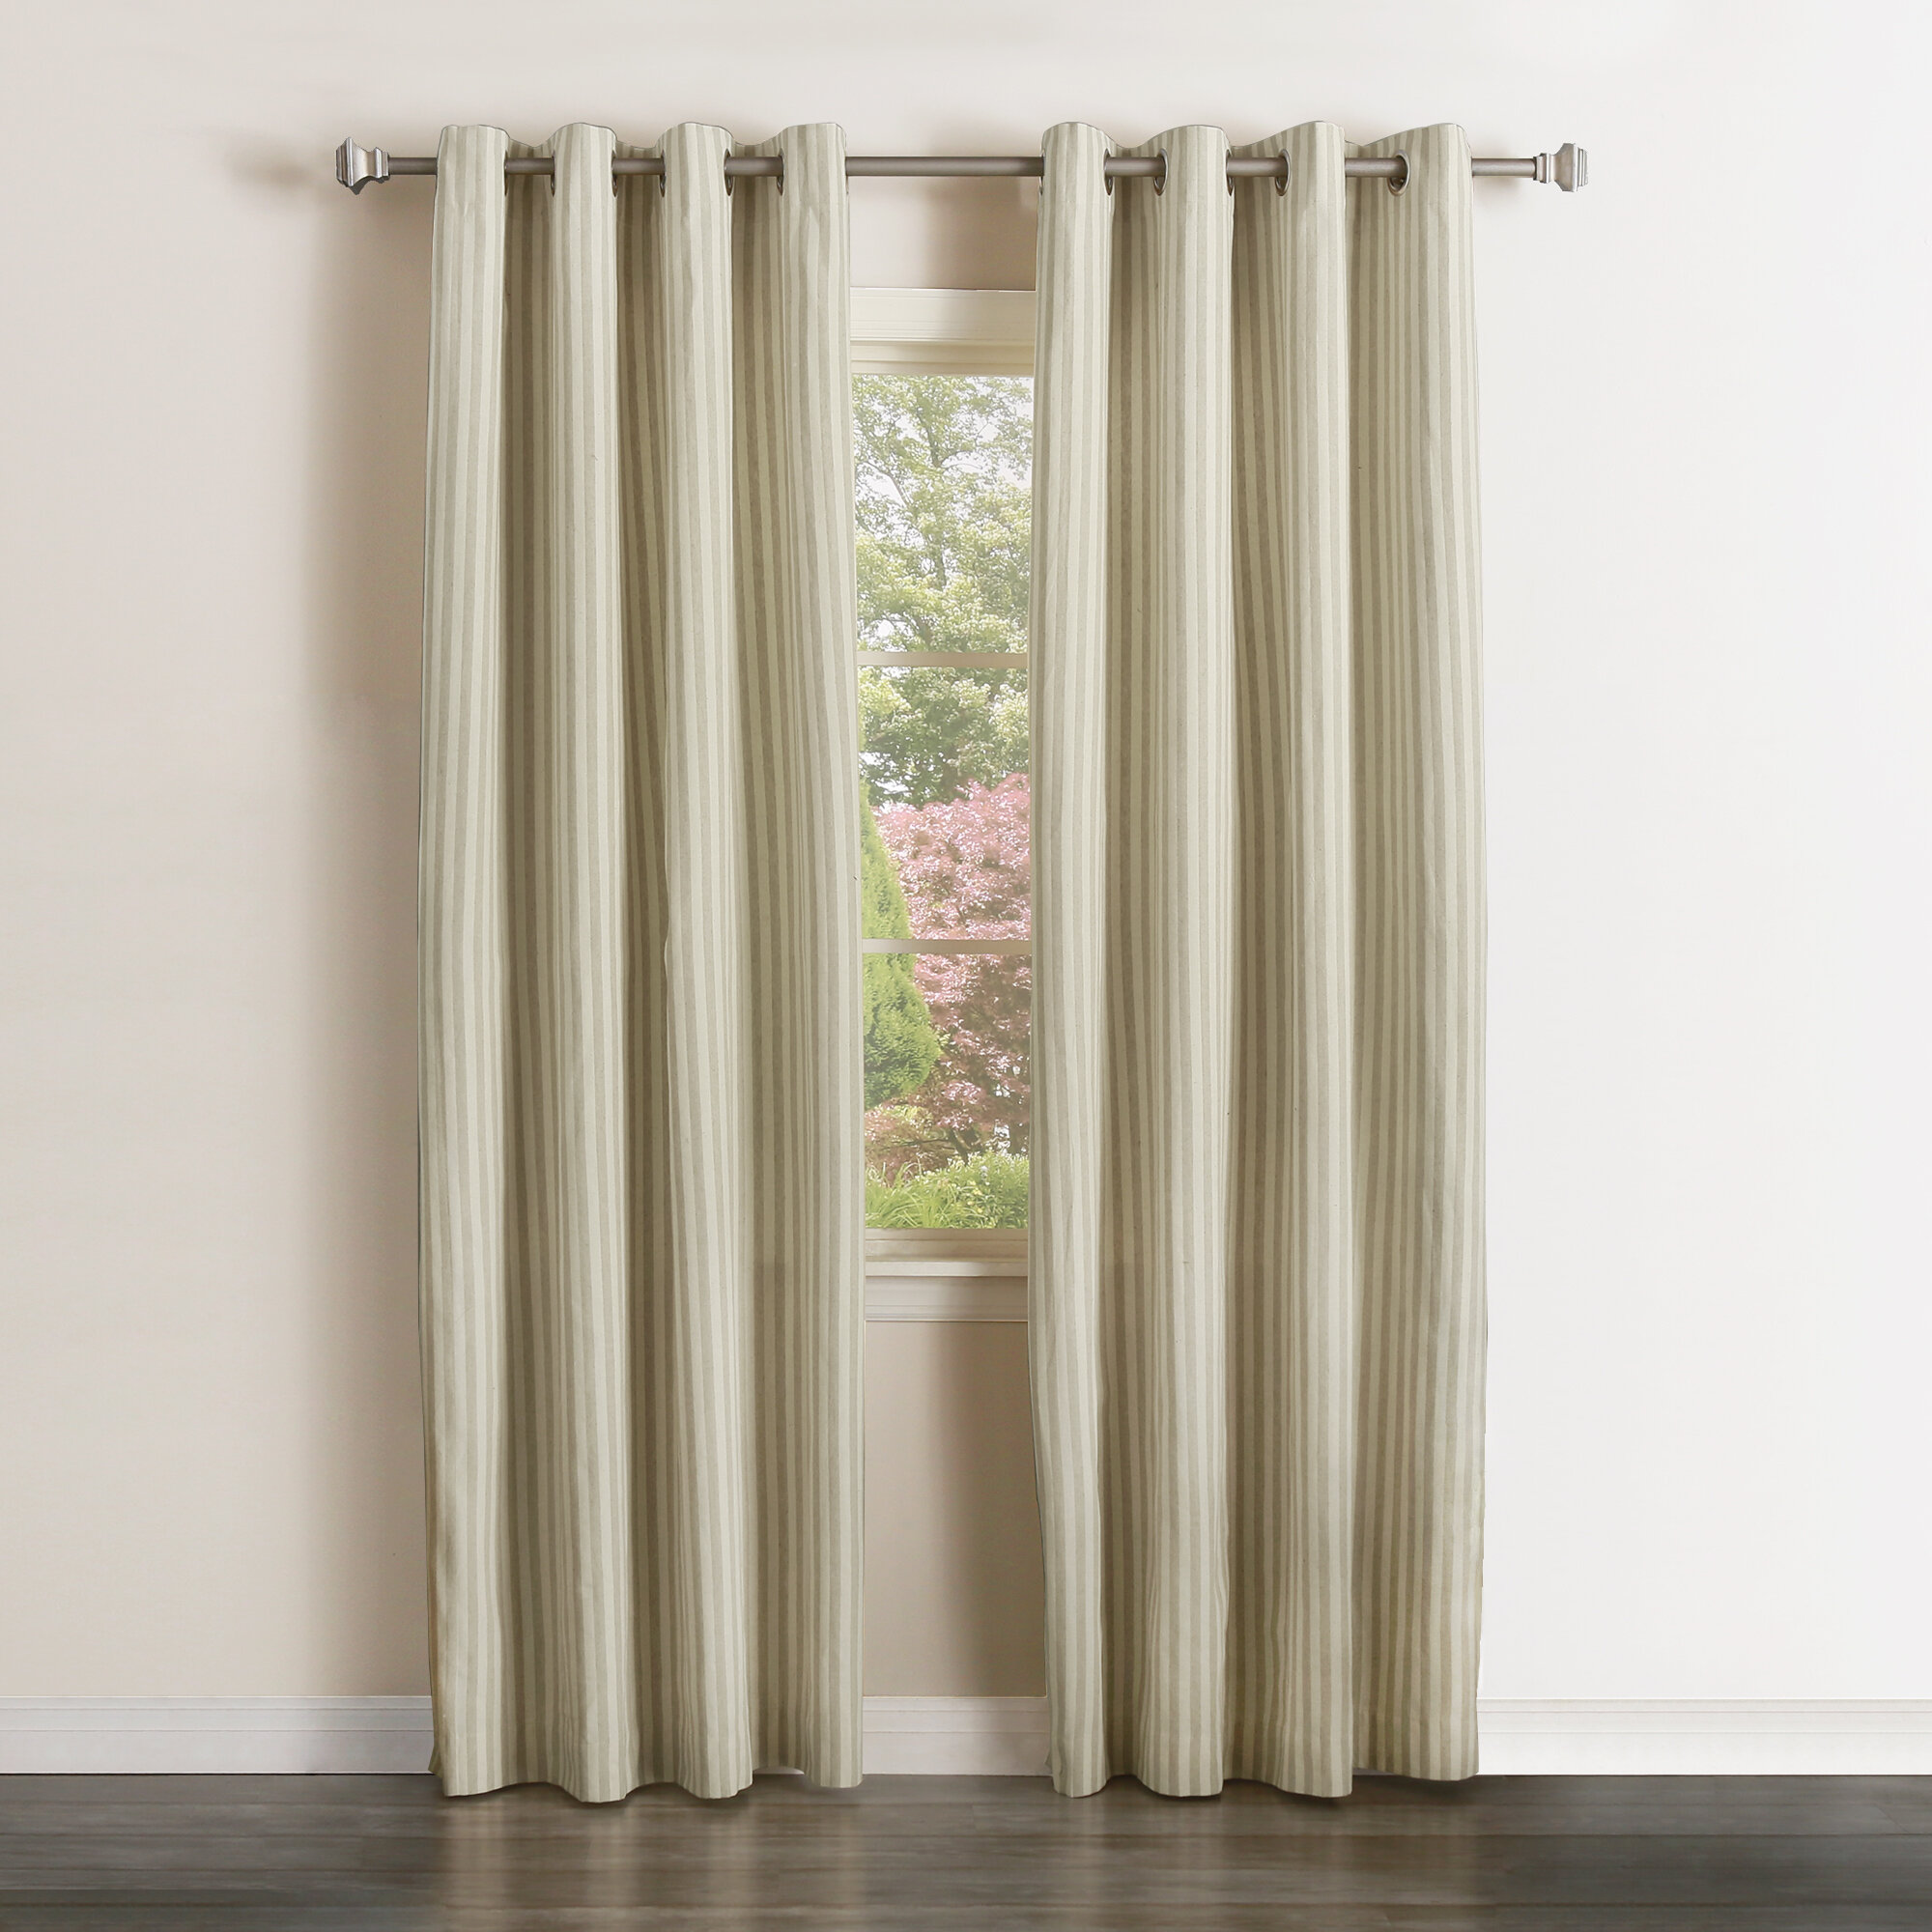 Best Home Fashion Inc Vertical Striped Semi Sheer